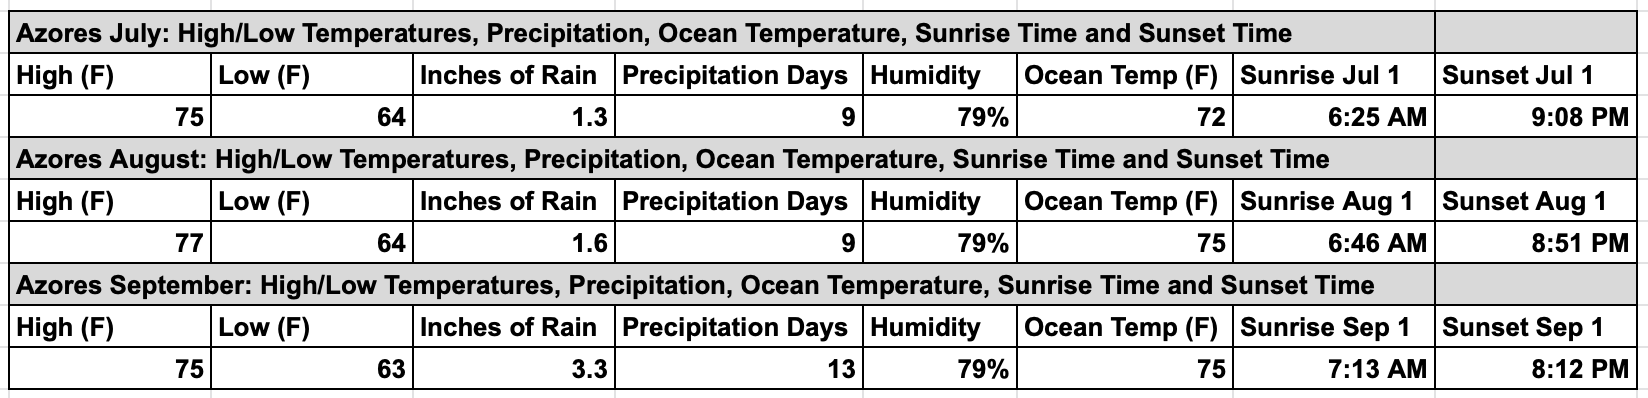 Azores-Weather-in-the Summer-Chart-Temperature-Precipitation-Humidity